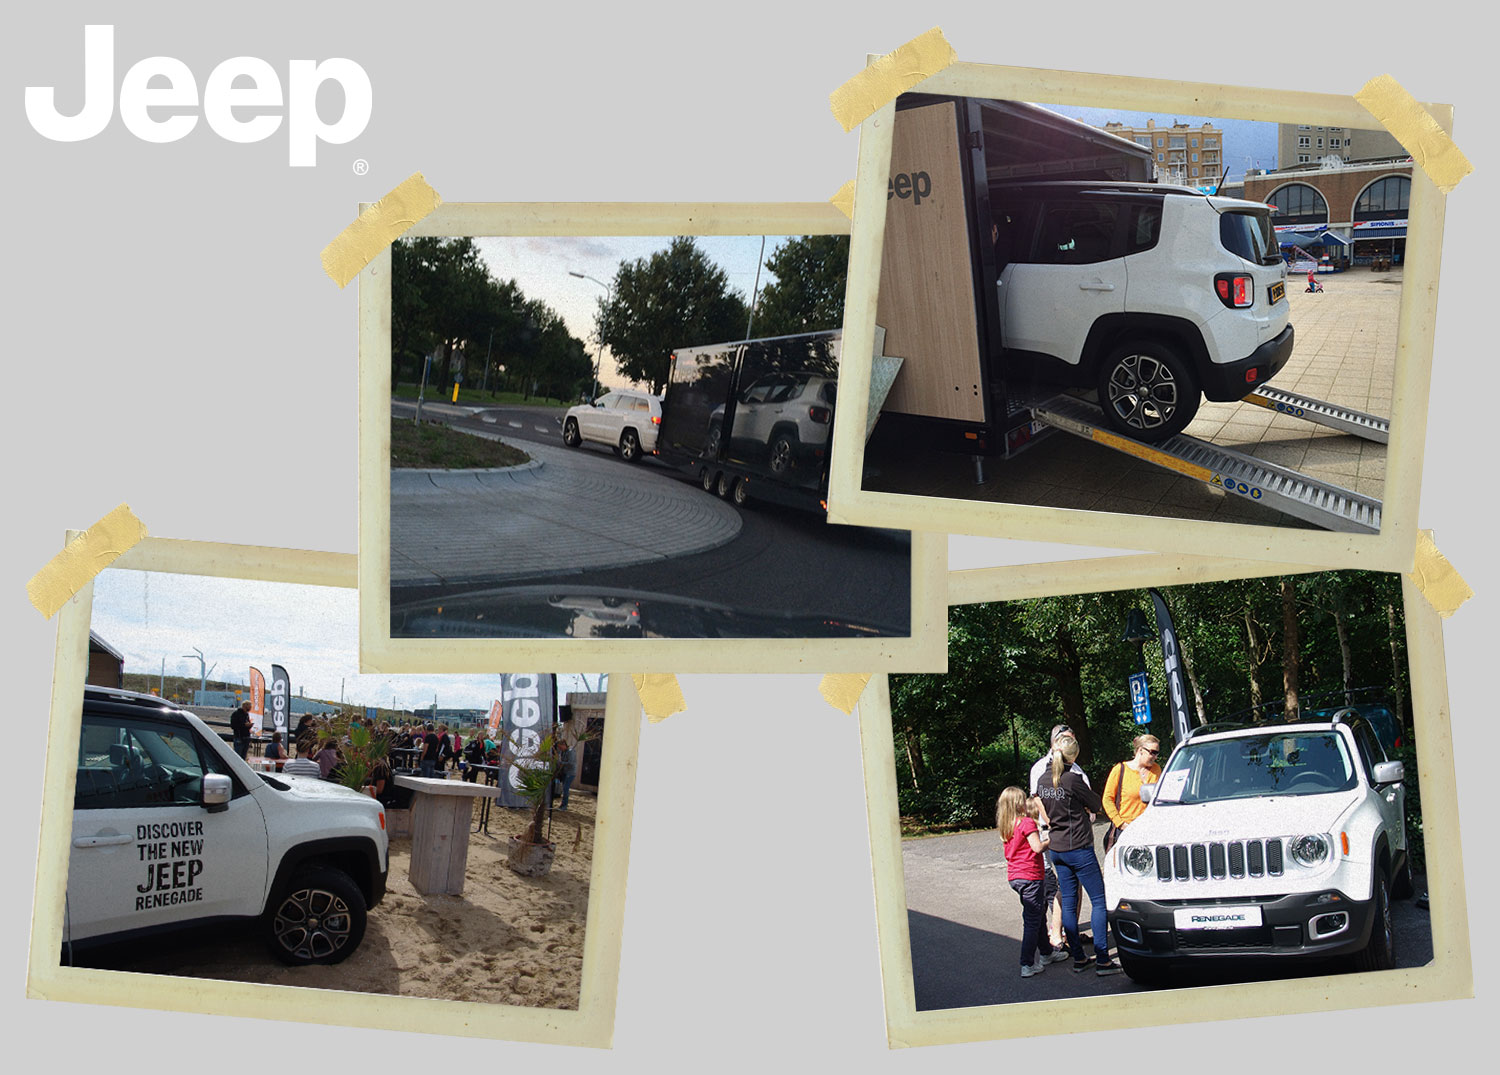 Introductie evenement Jeep Renegade-3